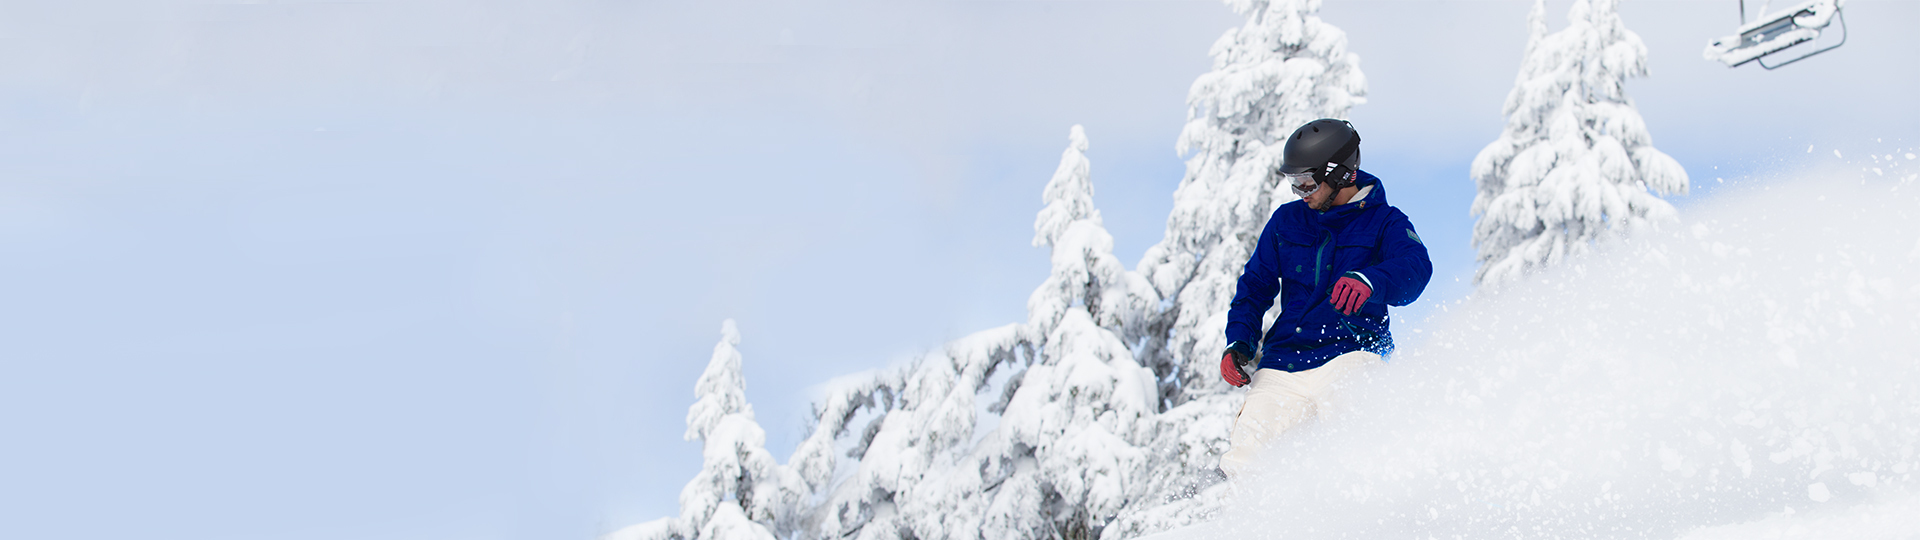 Find Info On All Of These Exciting Activities In One Place Download Now And Start Discovering What Grouse Mountain Has To Offer This Winter